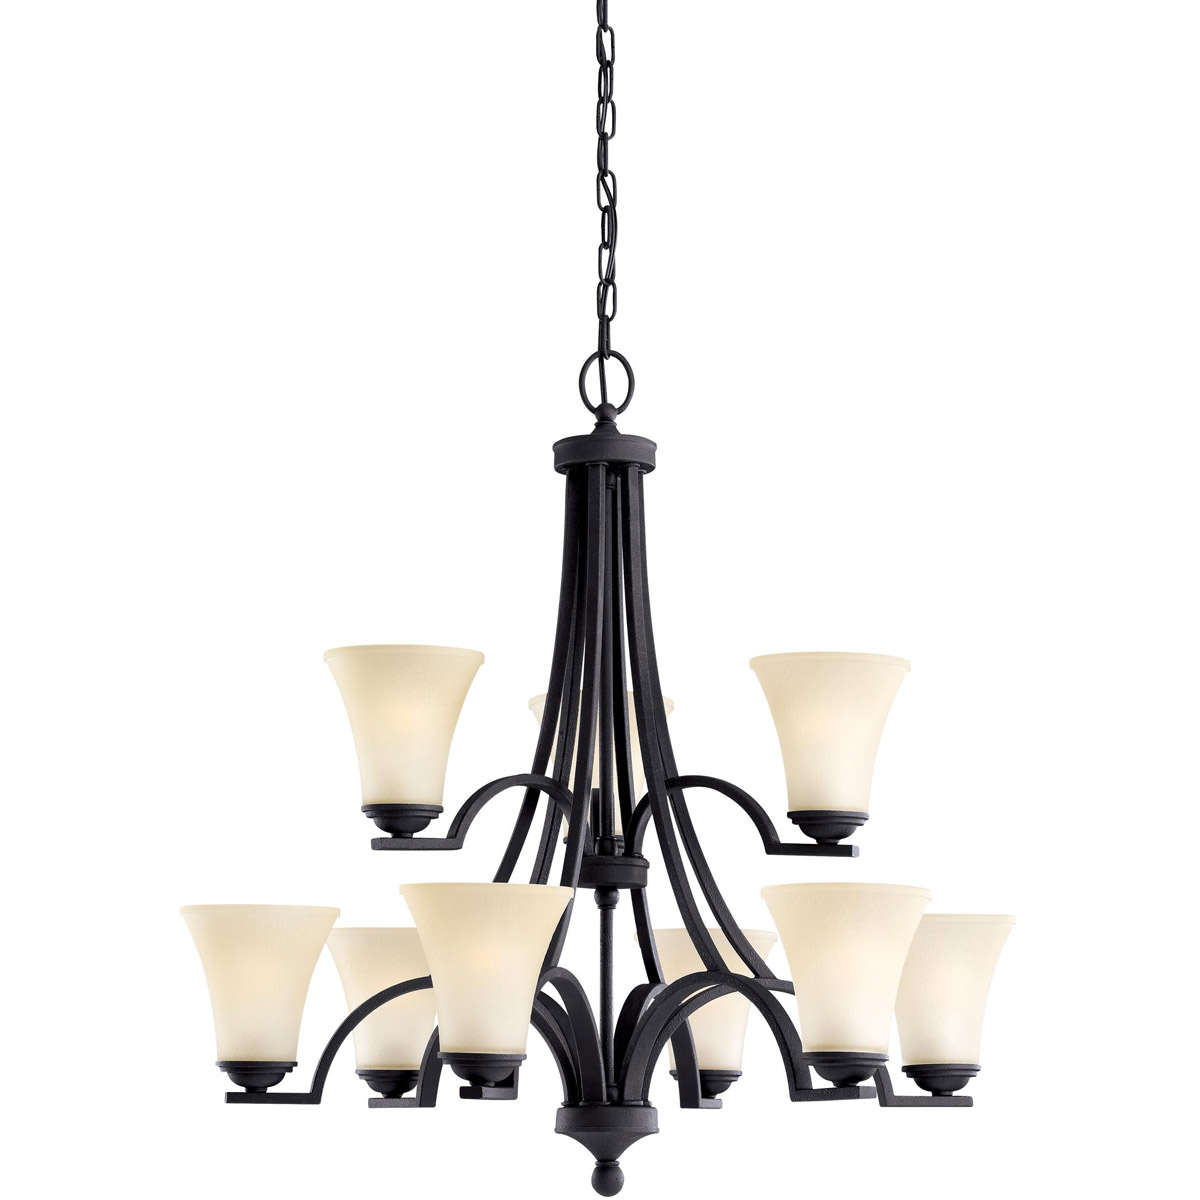 Sea Gull Somerton 9 Light Chandelier Multi-Tier in Blacksmith 31377BLE-839